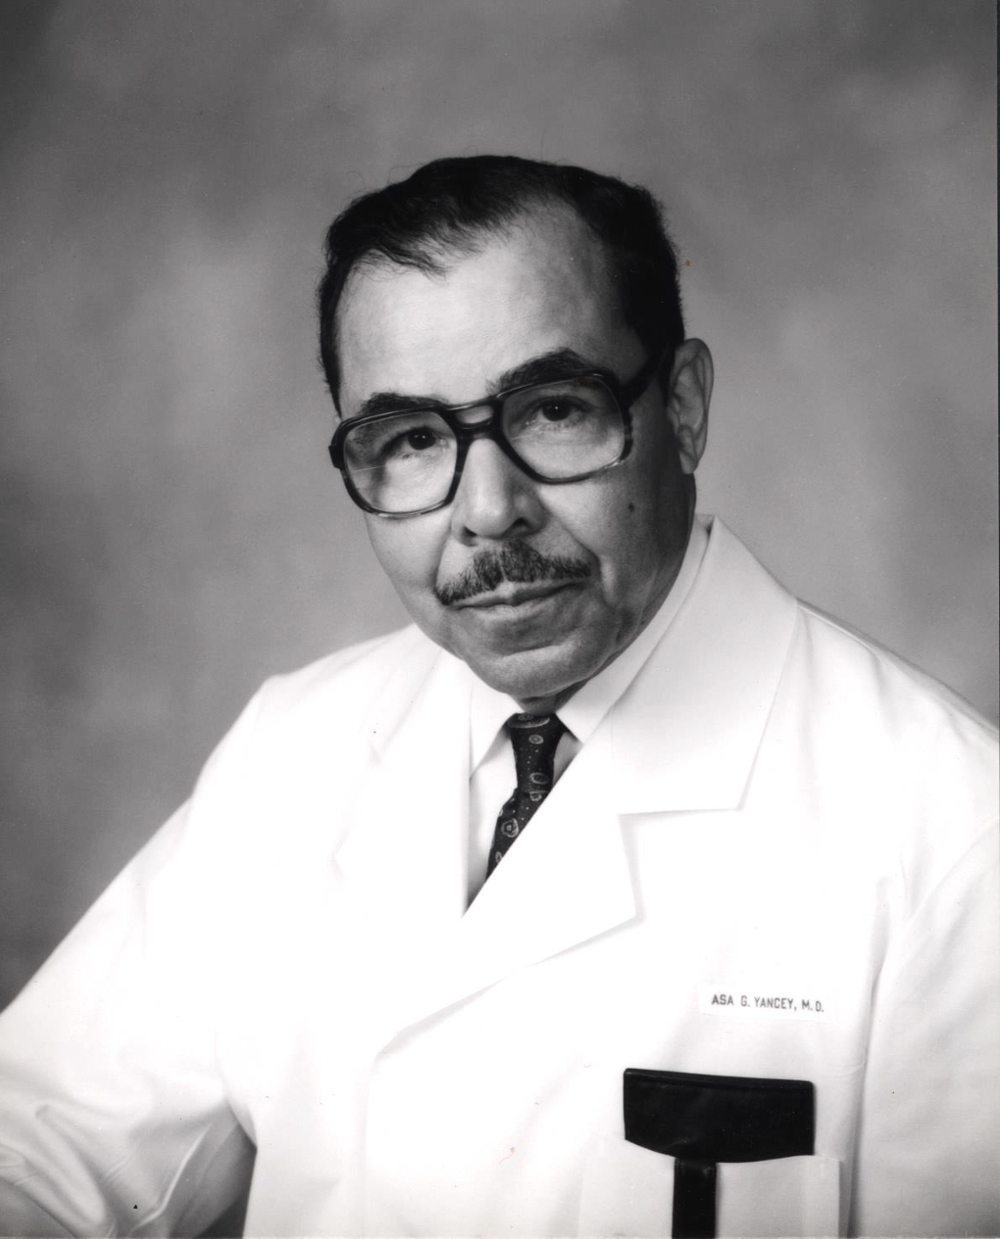 Asa Yancey, MD in white coat